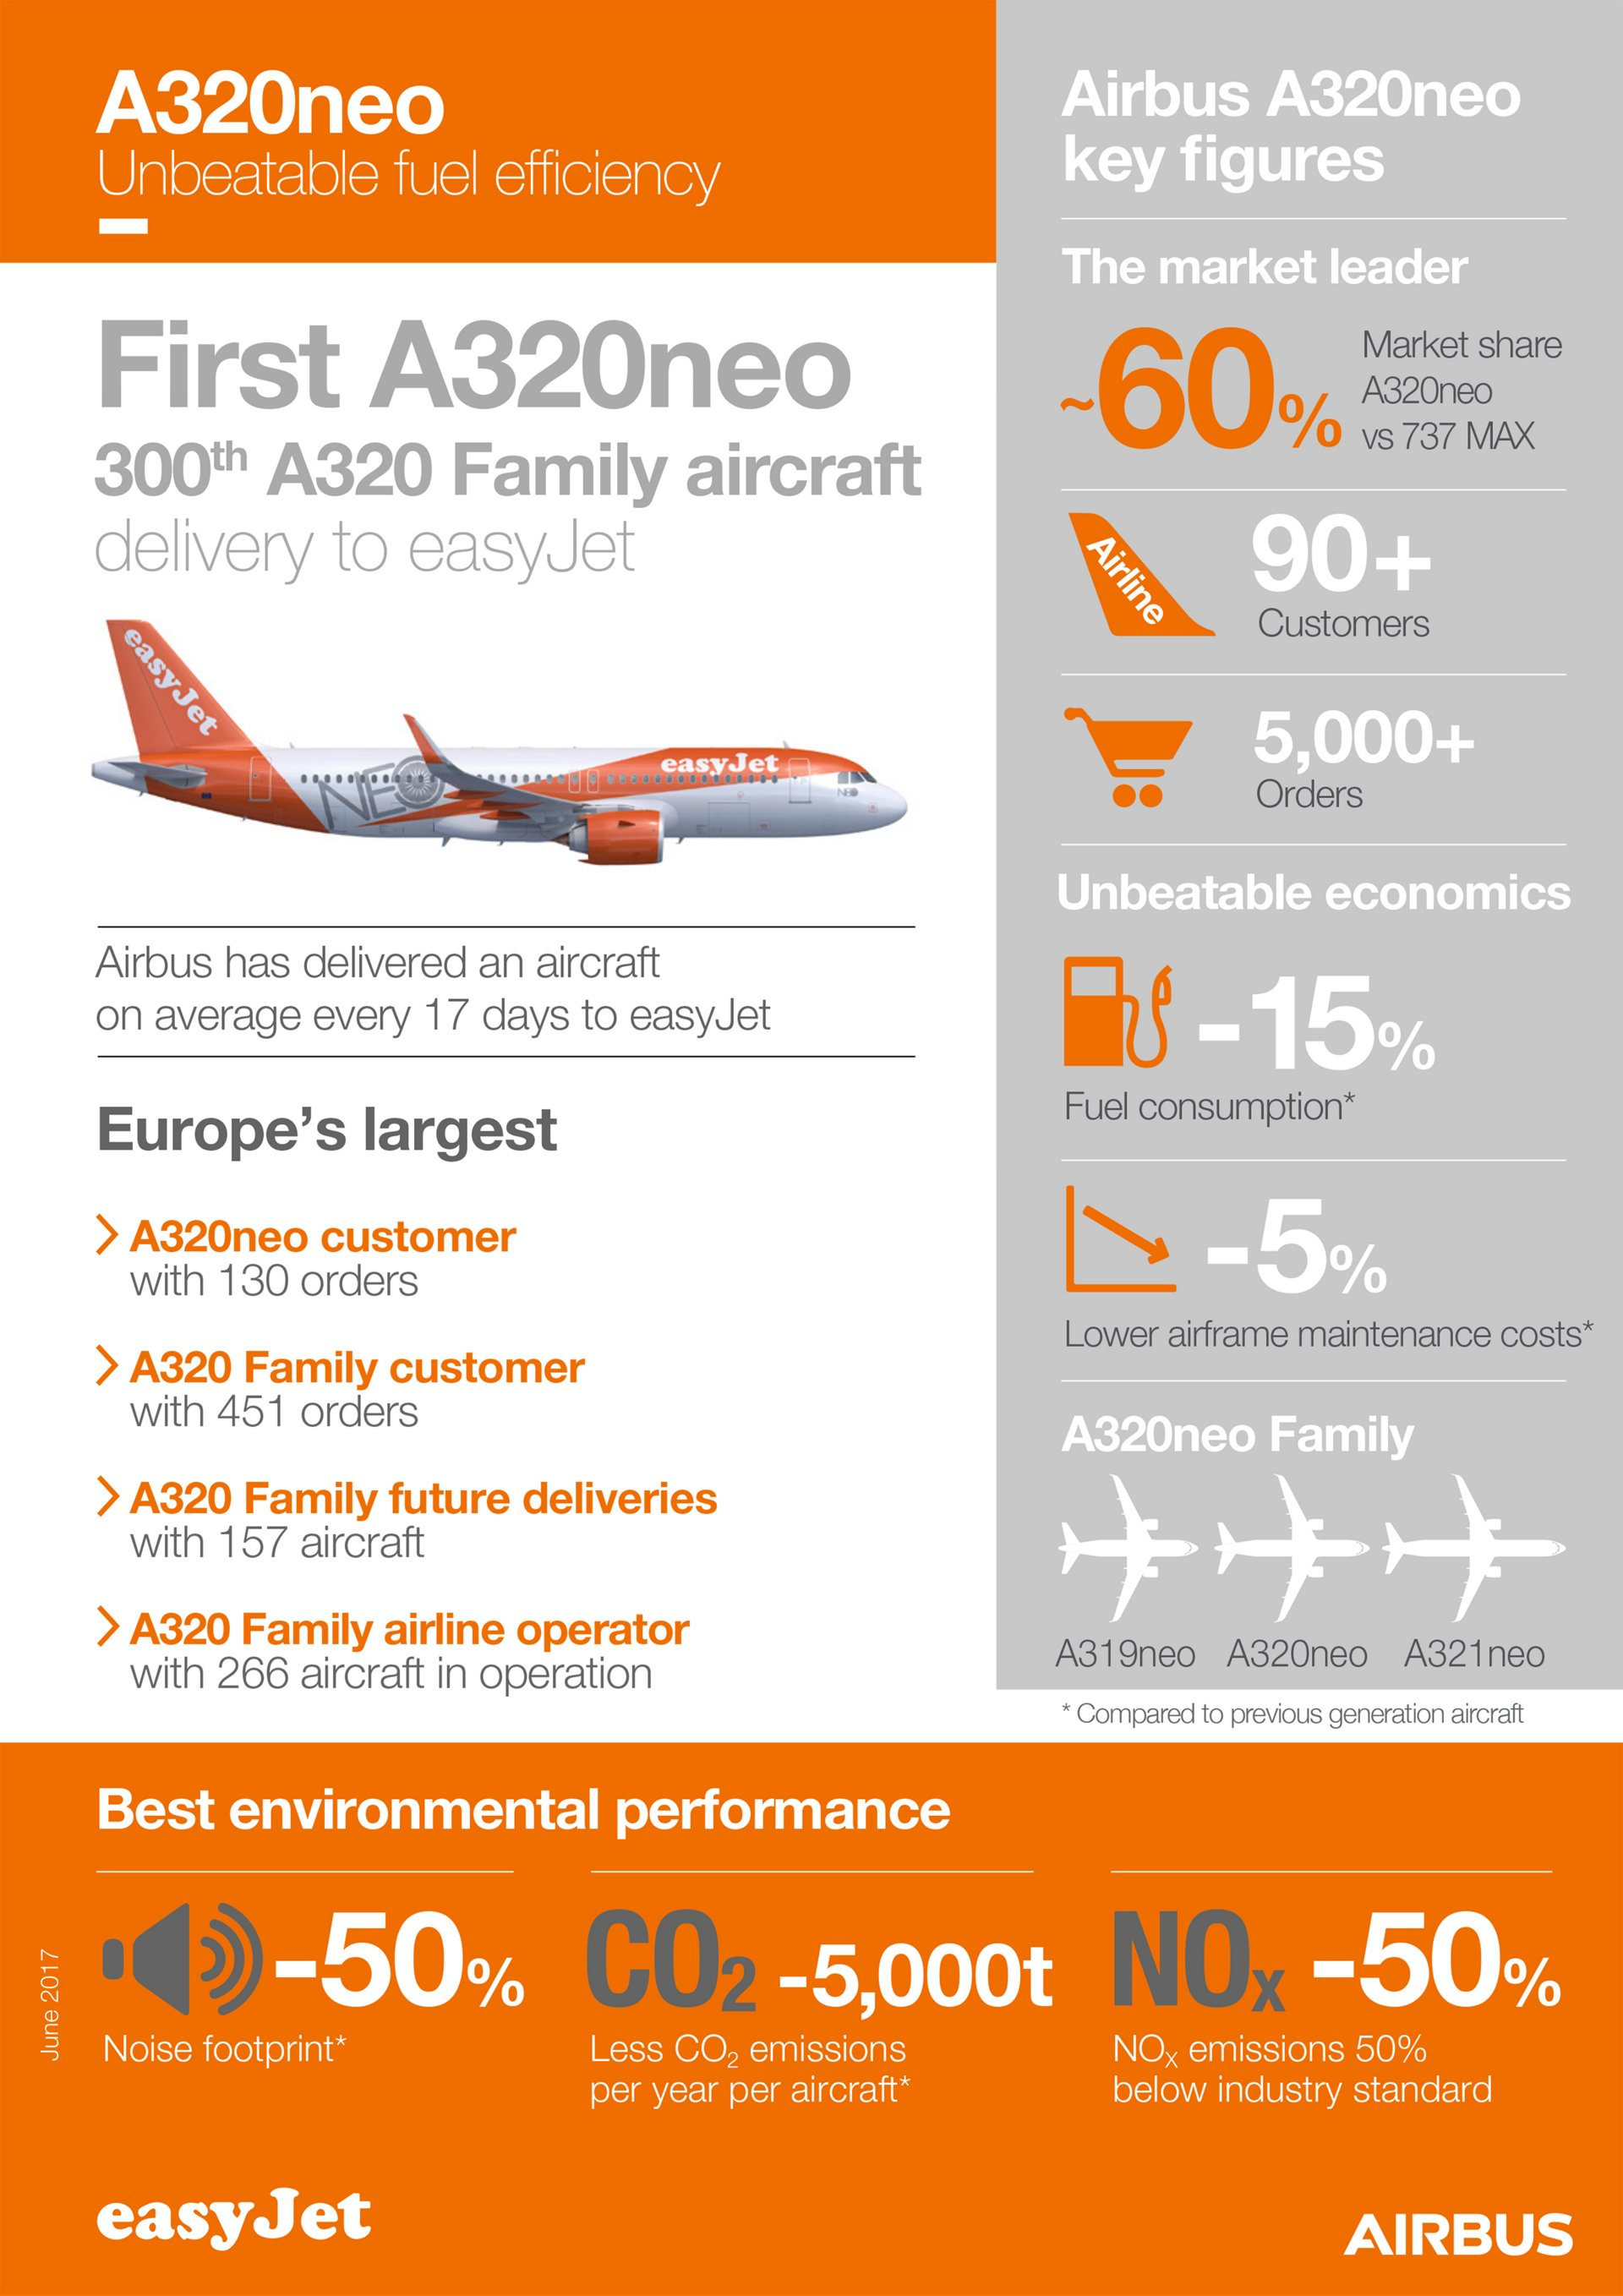 easyJet_infographic_First A320neo delivery